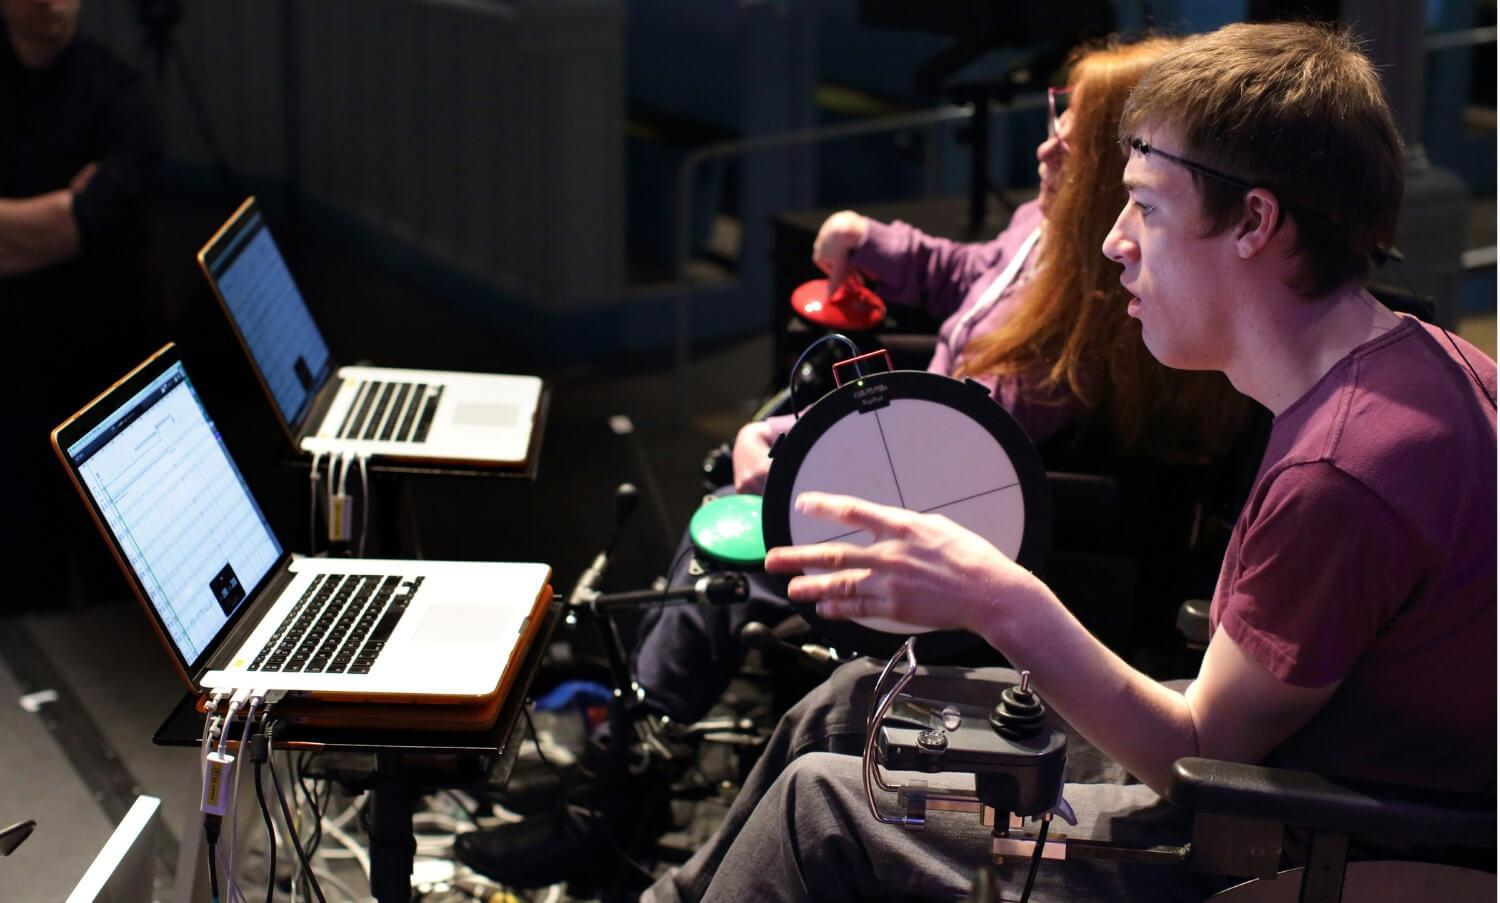 Two disabled performers using digital equipment to take part in the Digital Orchestra at Drake Music Scotland. Image by Anne Binckebanck